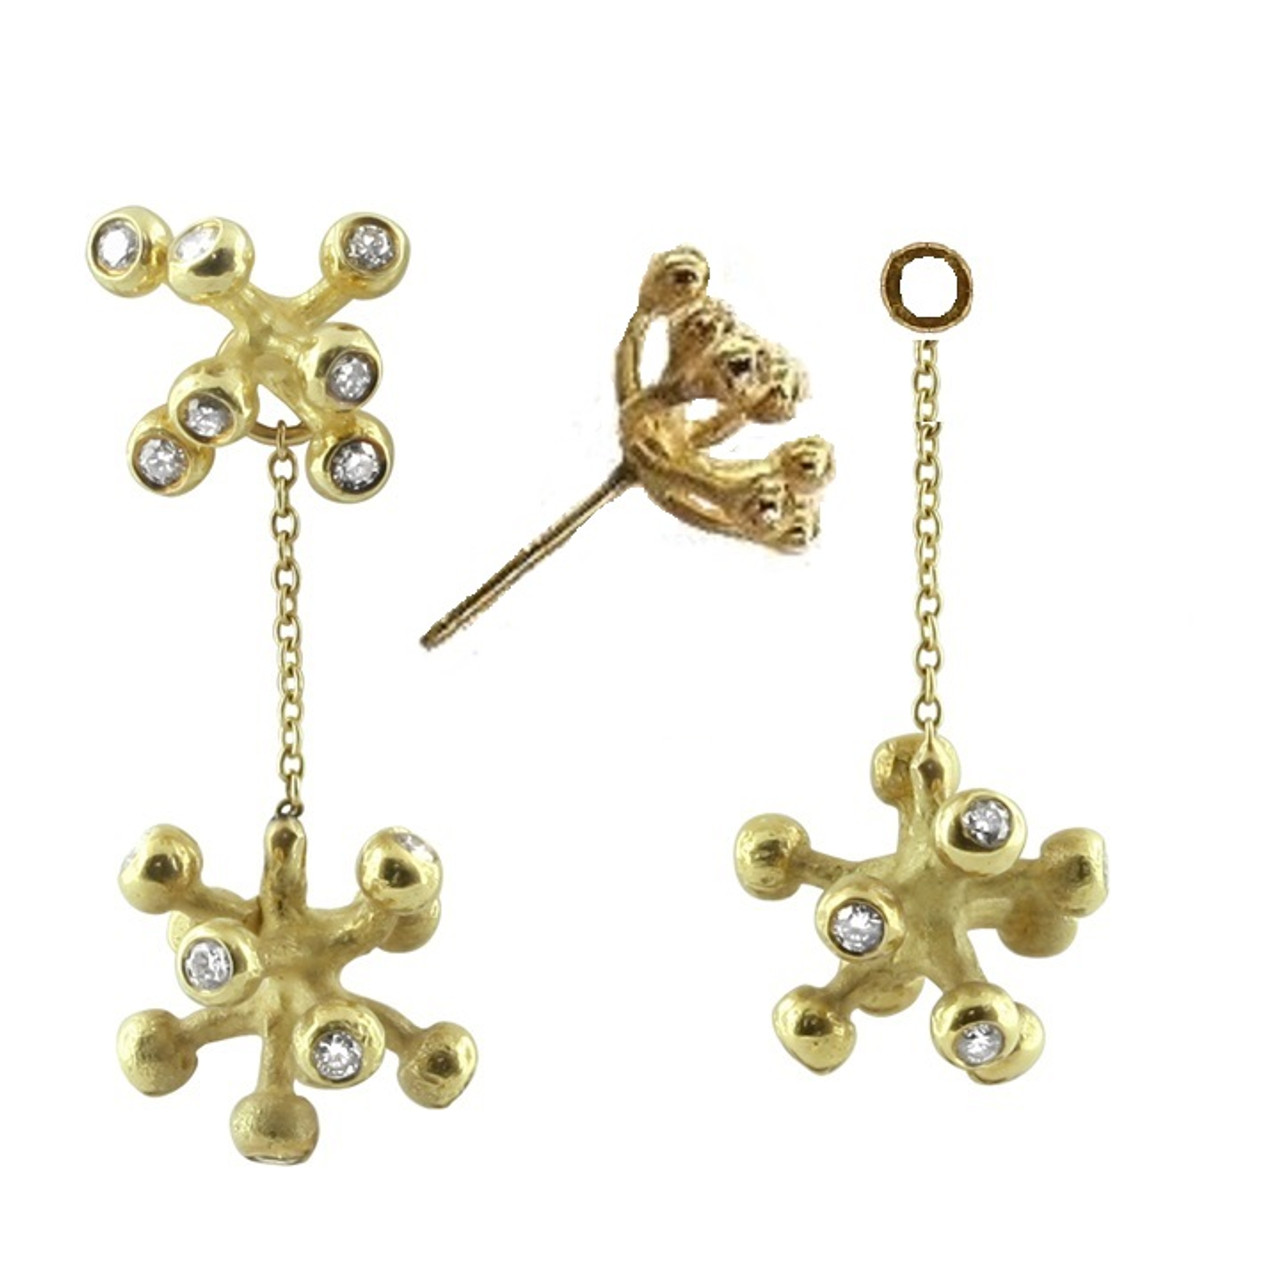 These Starburst drop earrings are available as a drop alone, or with a little ring at the top so they can be worn with fireworks studs, or with your own stud earrings.